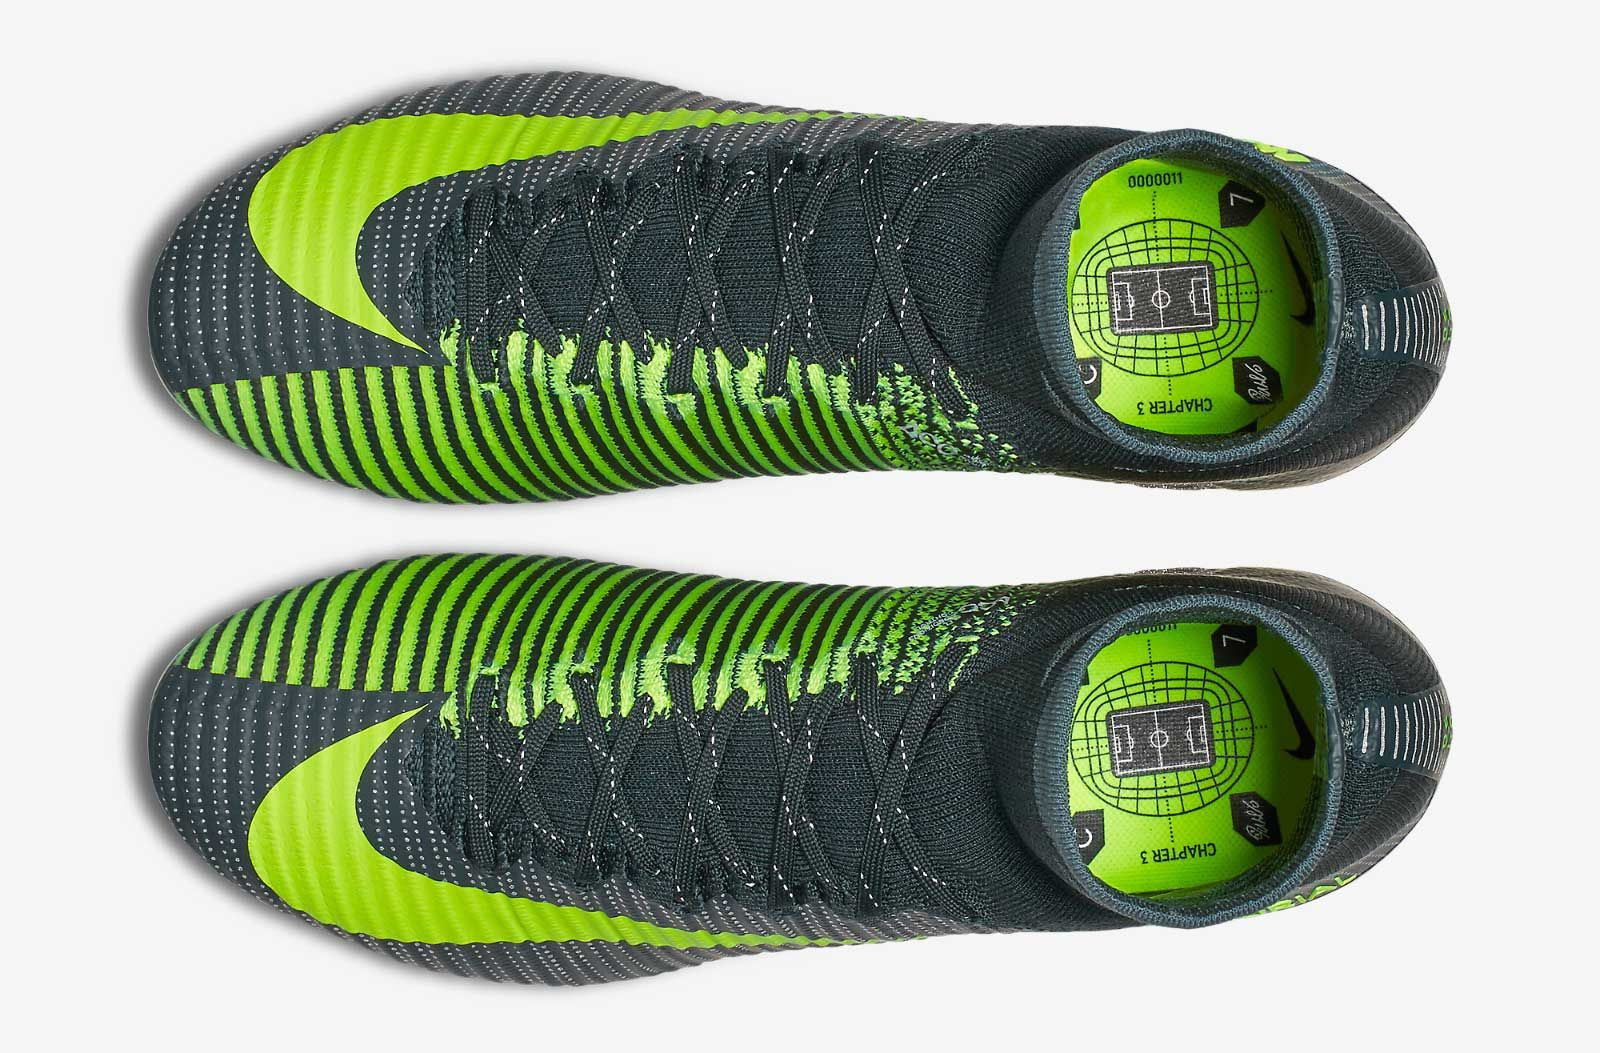 7b82ee2a1f2 The dark green Nike Mercurial Superfly 2016-2017 Cristiano Ronaldo  Discovery Boots celebrate CR7 s all-important transfer to Manchester United  in 2003.